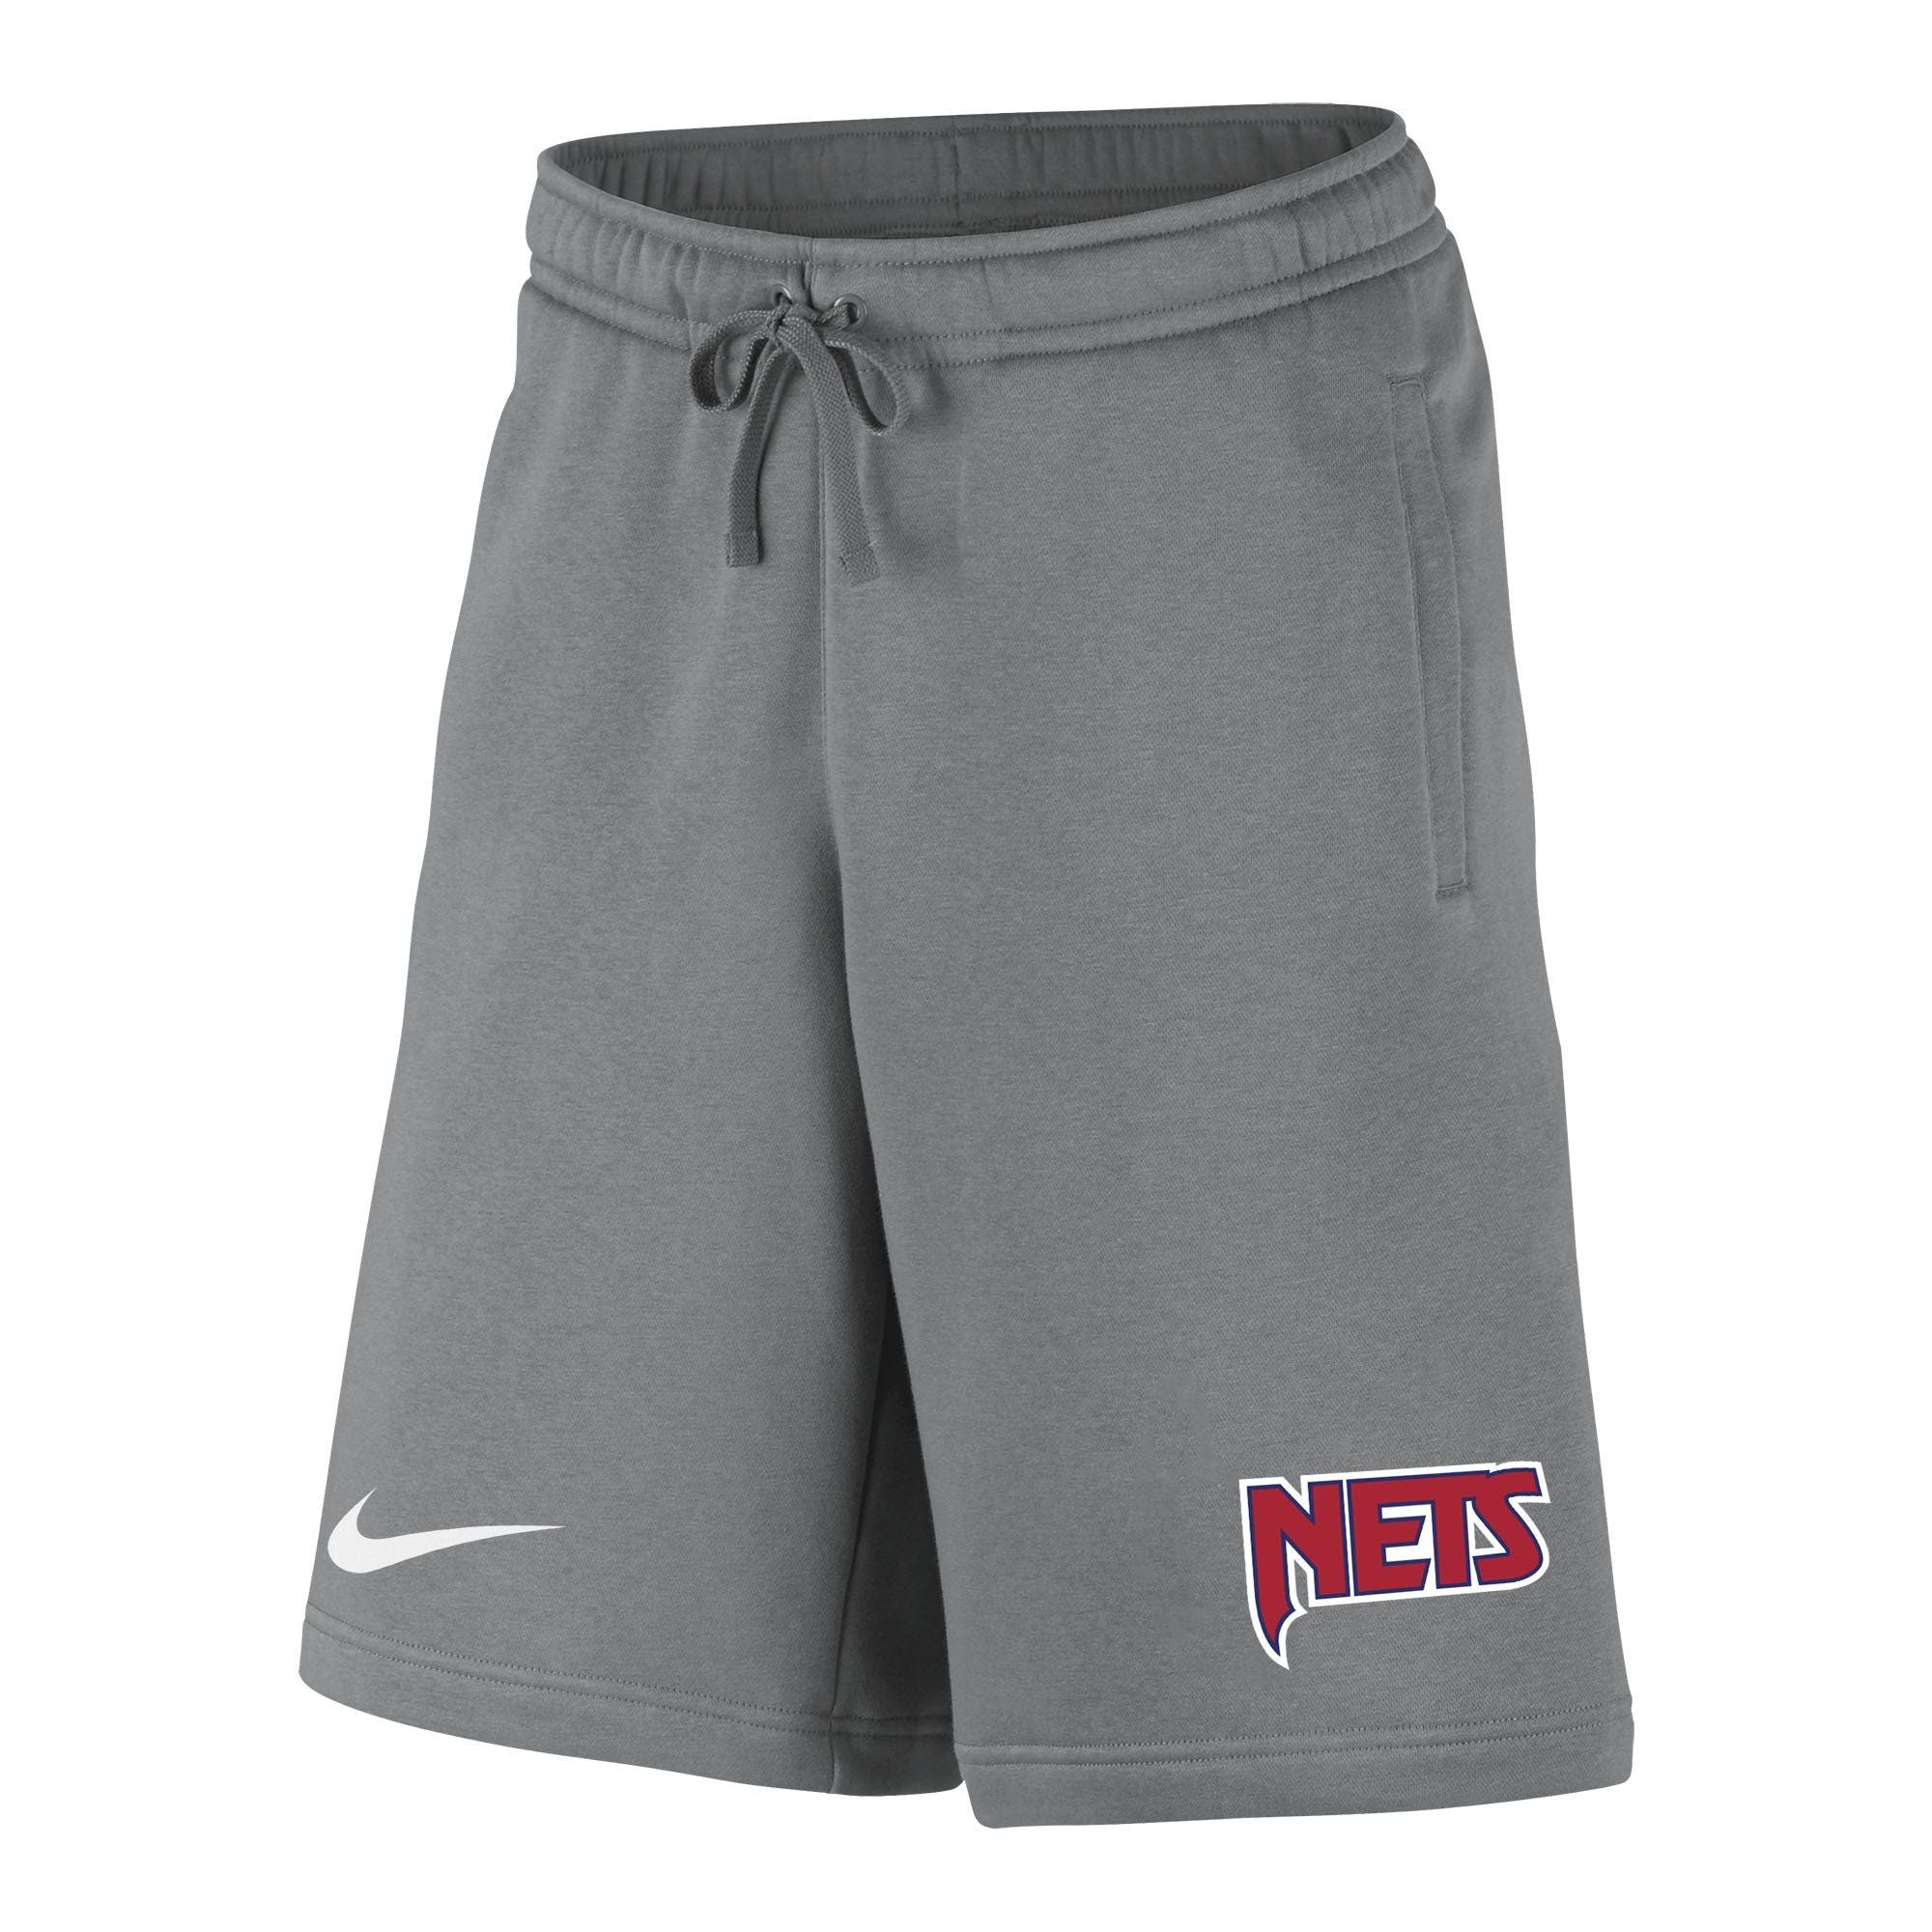 Men's Classic Edition Club Fleece Short - NetsStore.com